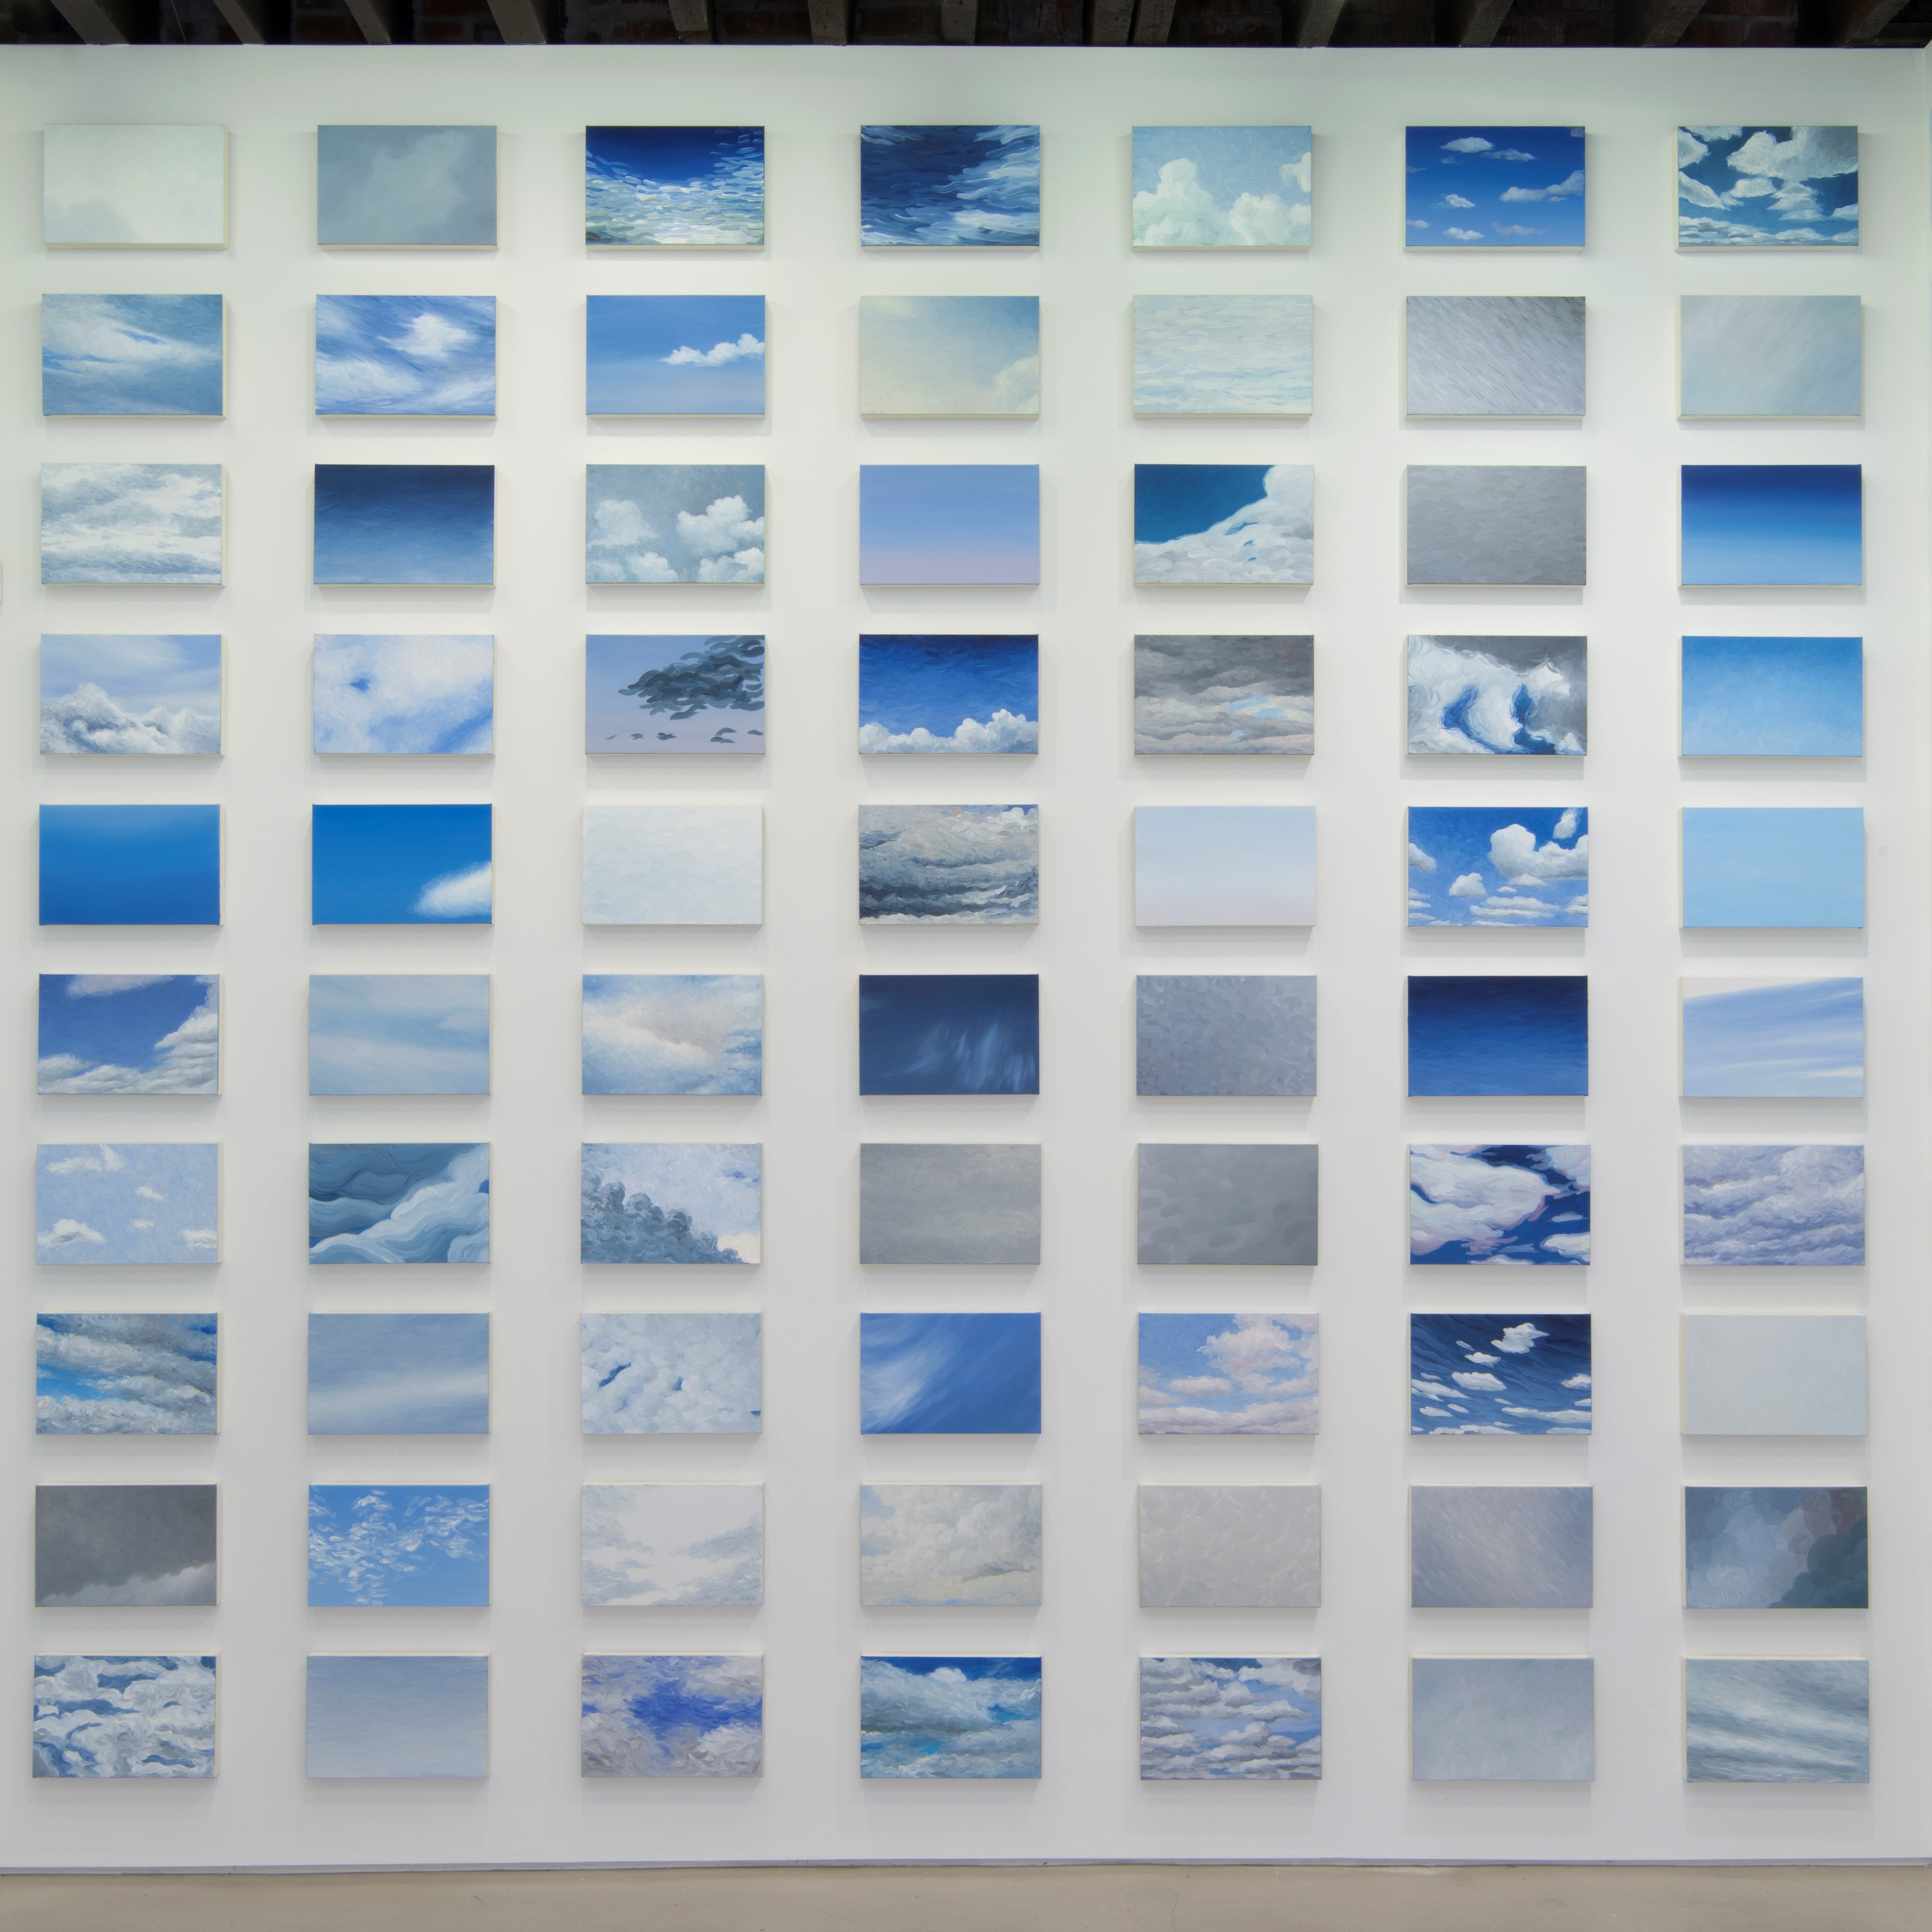 <p>Cynthia Daignault (American, b. 1978). <i>I love you more than one more day</i>, 2013. Oil on linen, 365 paintings: 10 x 15 in. (25.4 x 38.1 cm) each; overall dimensions variable. Installation view:<b> </b><i>Which Is the Sun and Which Is the Shadow?</i>, Lisa Cooley, New York, 2013. Collection of Marsha and John Kleinheinz, Fort Worth, Texas. Courtesy of the artist and Lisa Cooley, New York © Cynthia Daignault. Photo: John Berens</p>